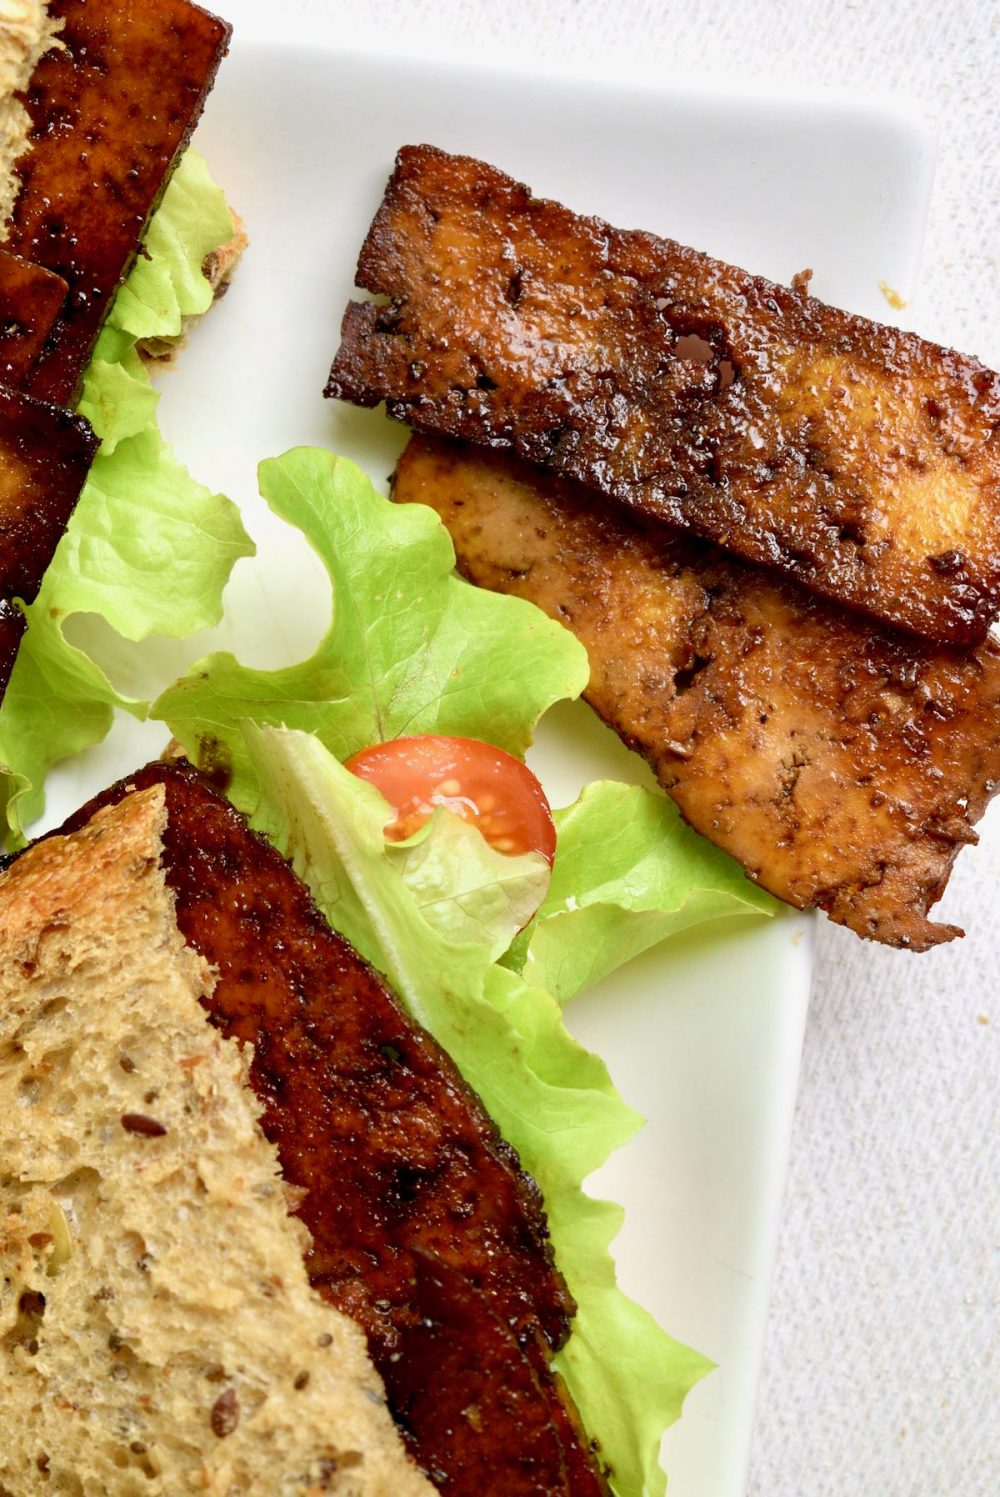 A top down view of a bacon tomato and lettuce sandwich next to some slices of the fried tofu that has been prepared to imitate the texture and flavour of bacon.